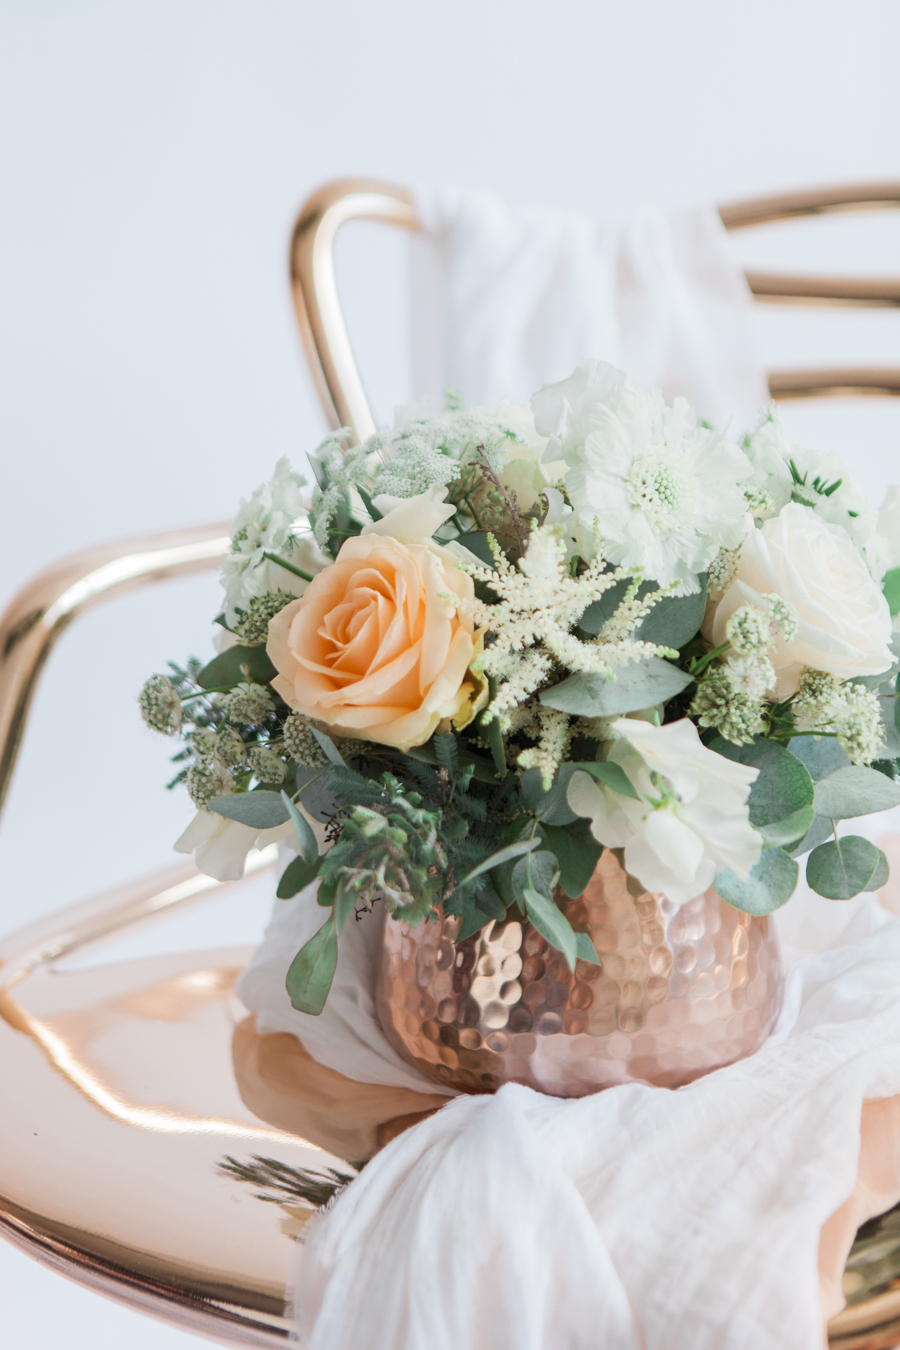 Copper metallic and succulent wedding style ideas, images by Amanda Karen Photography (3)